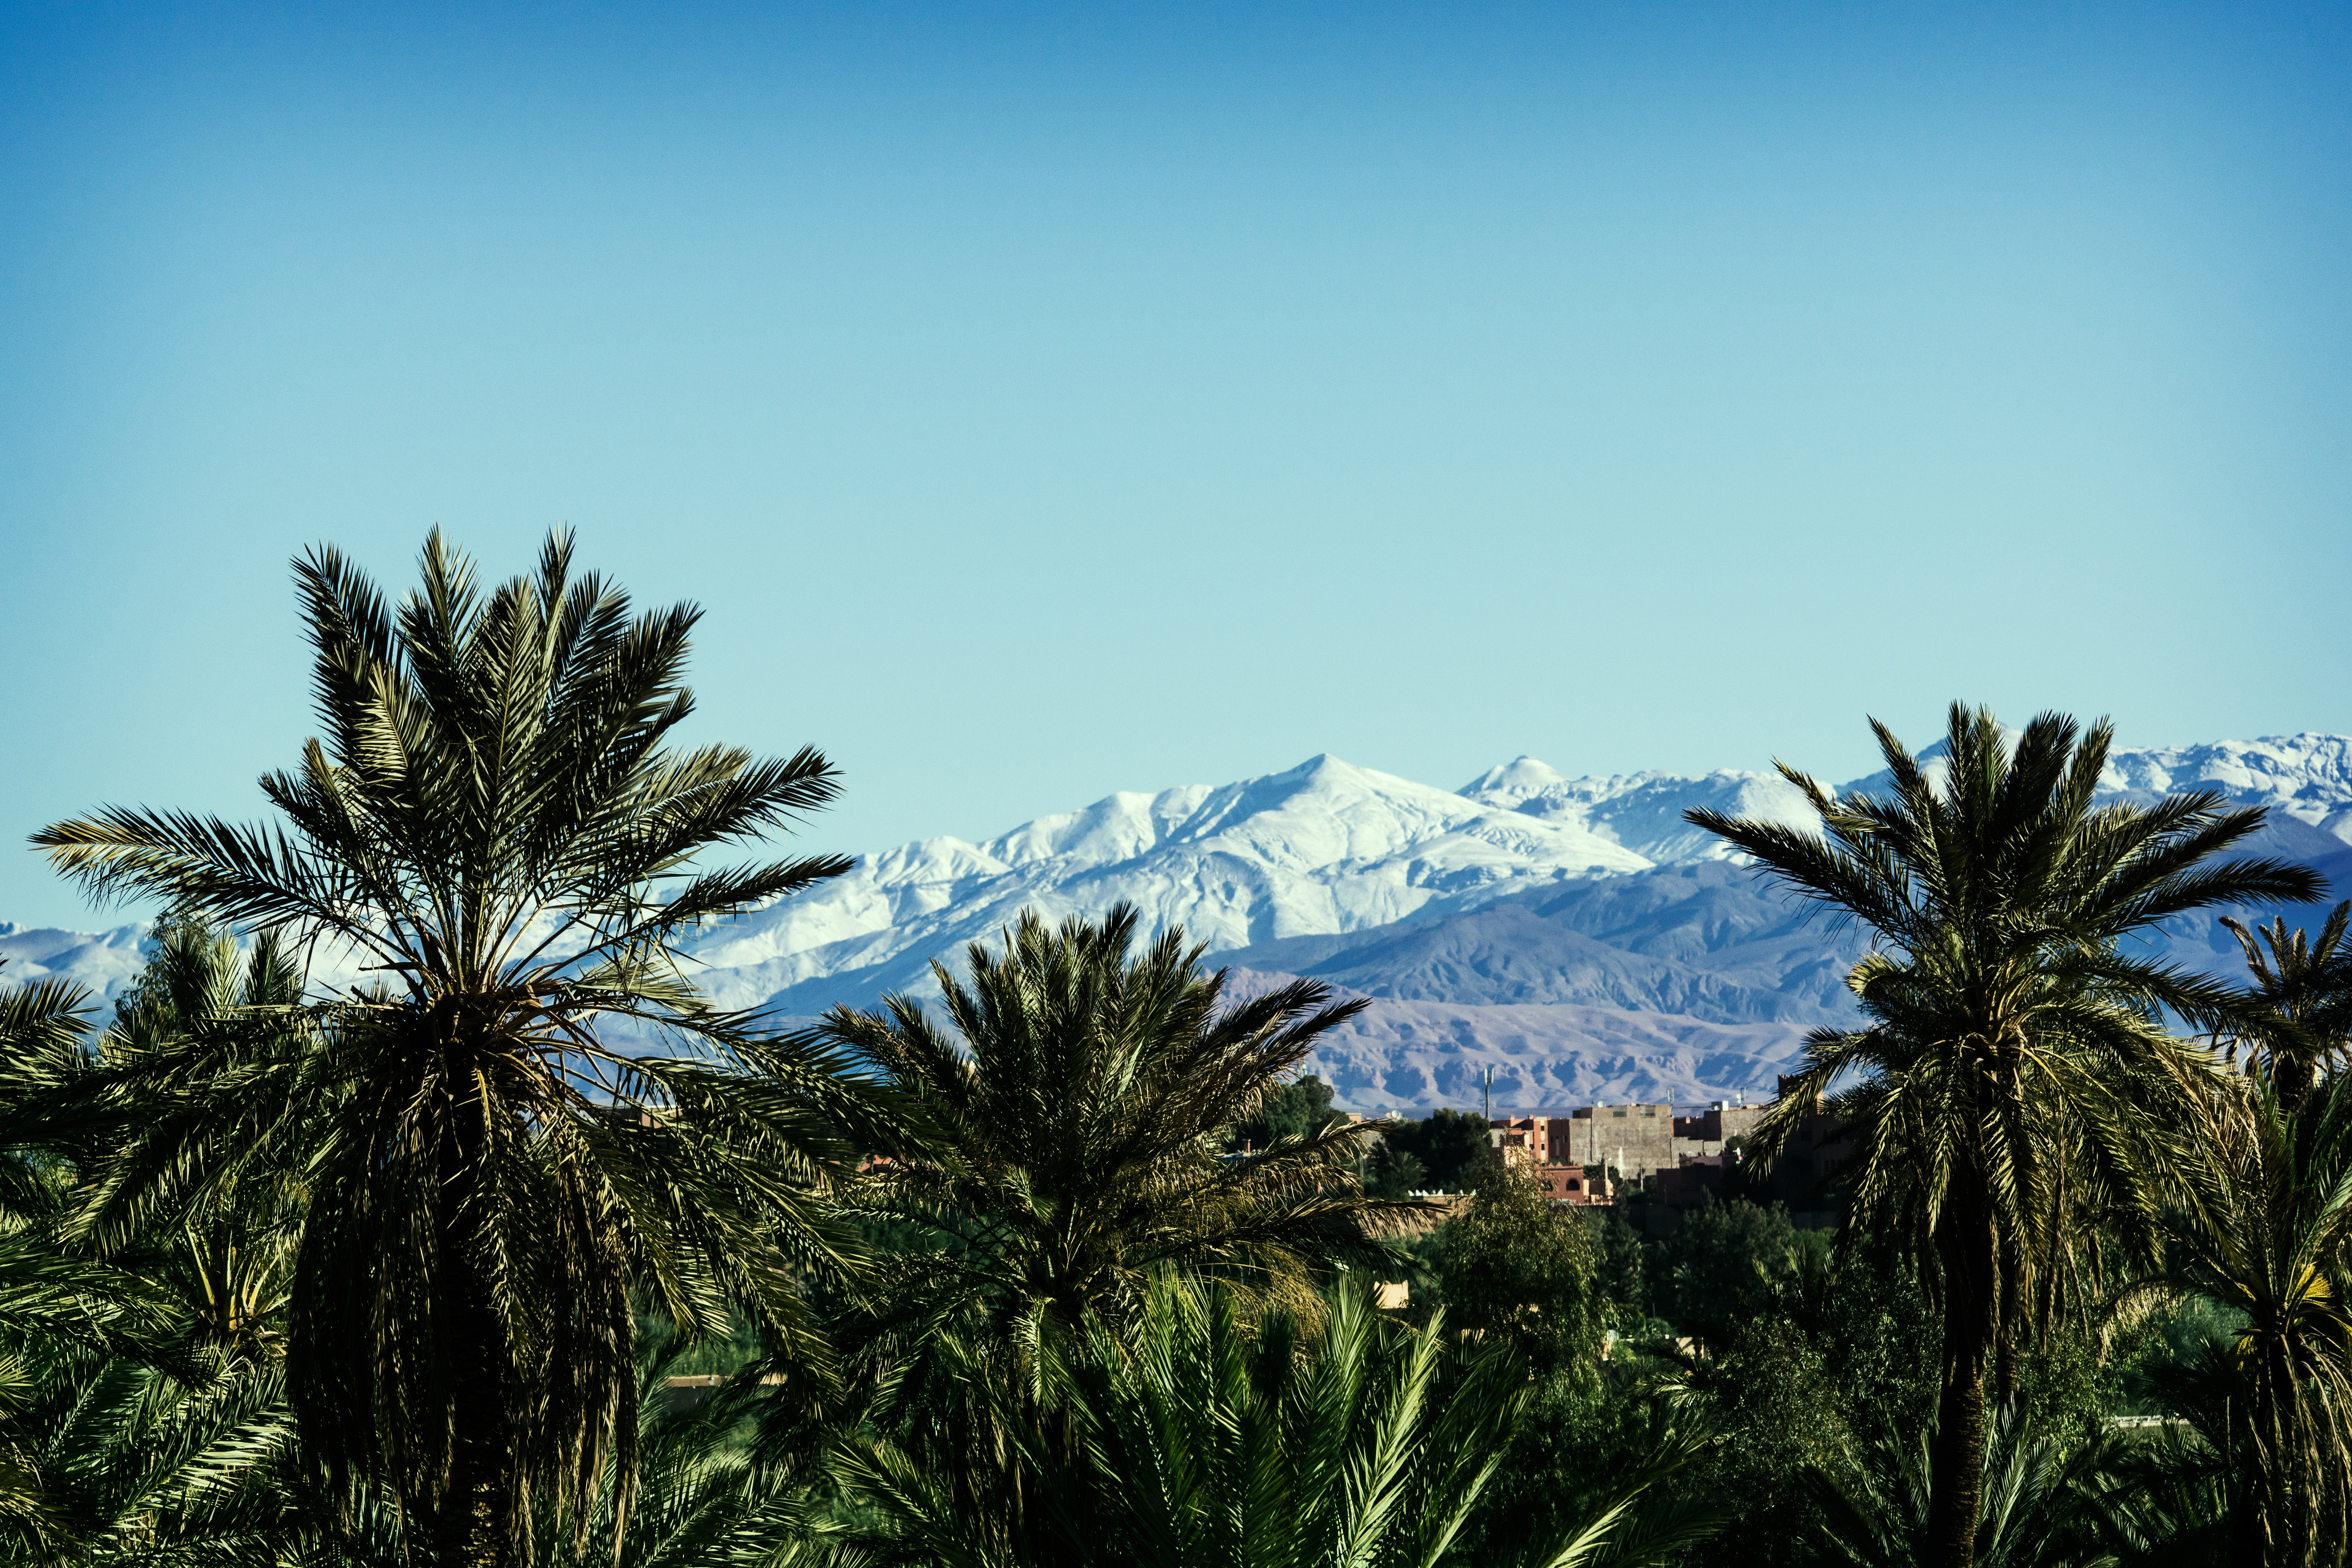 Palmtrees and mountains.jpg